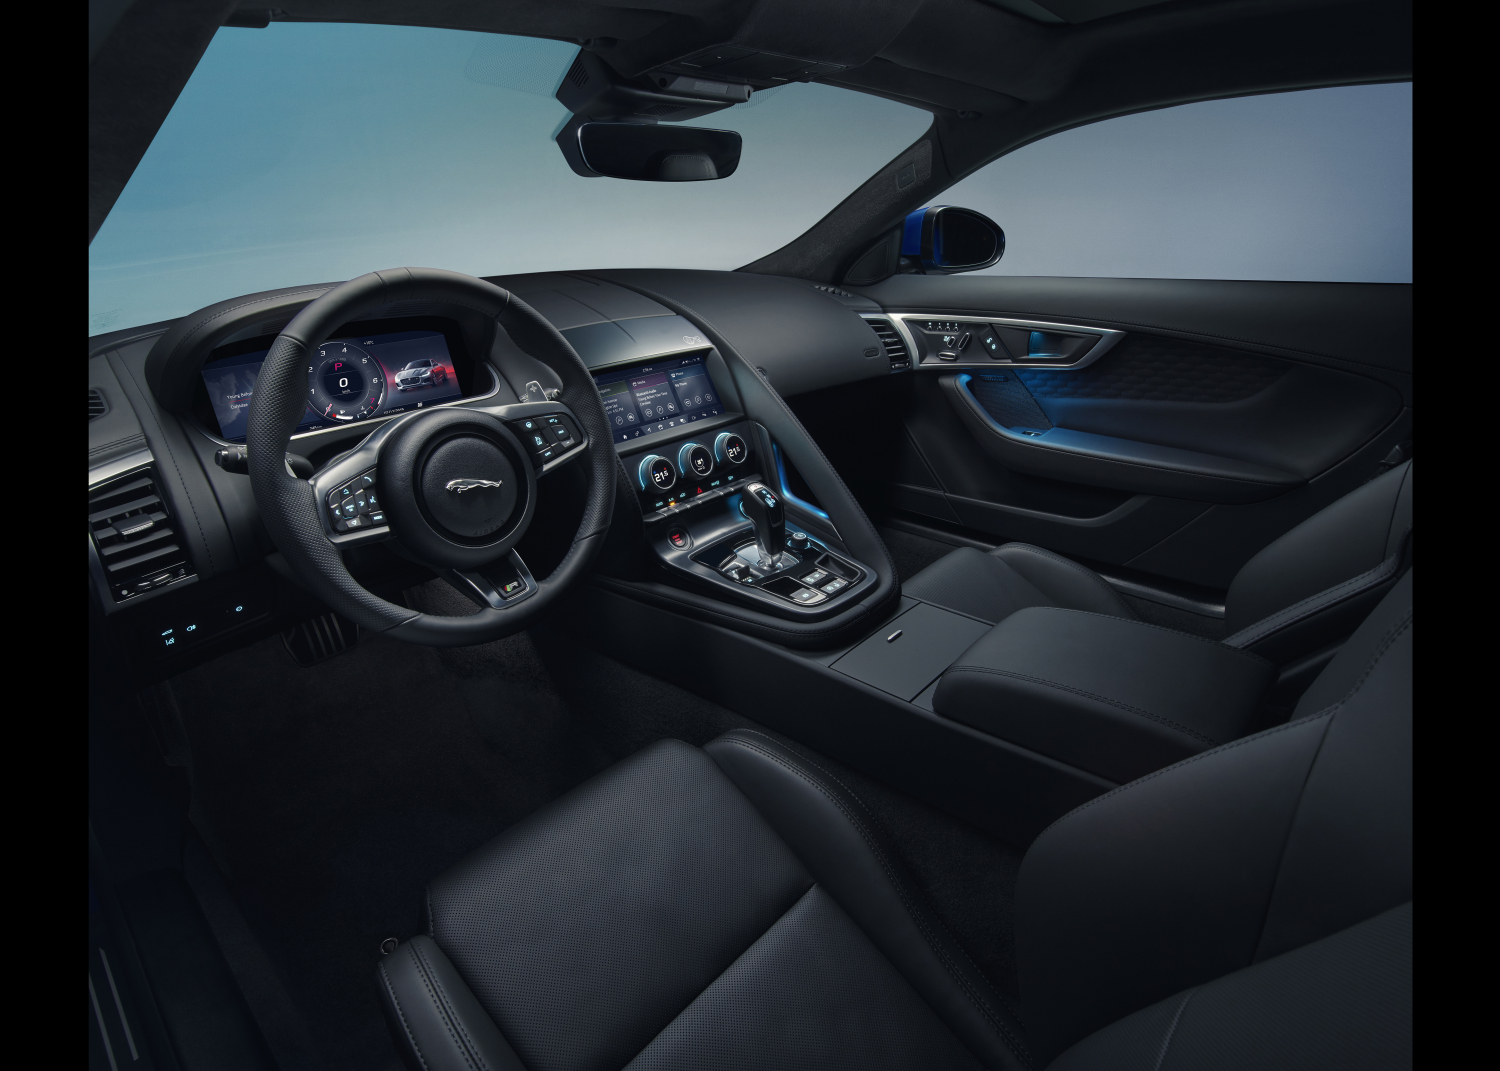 New Jaguar F-type Makes World Premiere with a Little Help from Hot Wheels® - Image 1